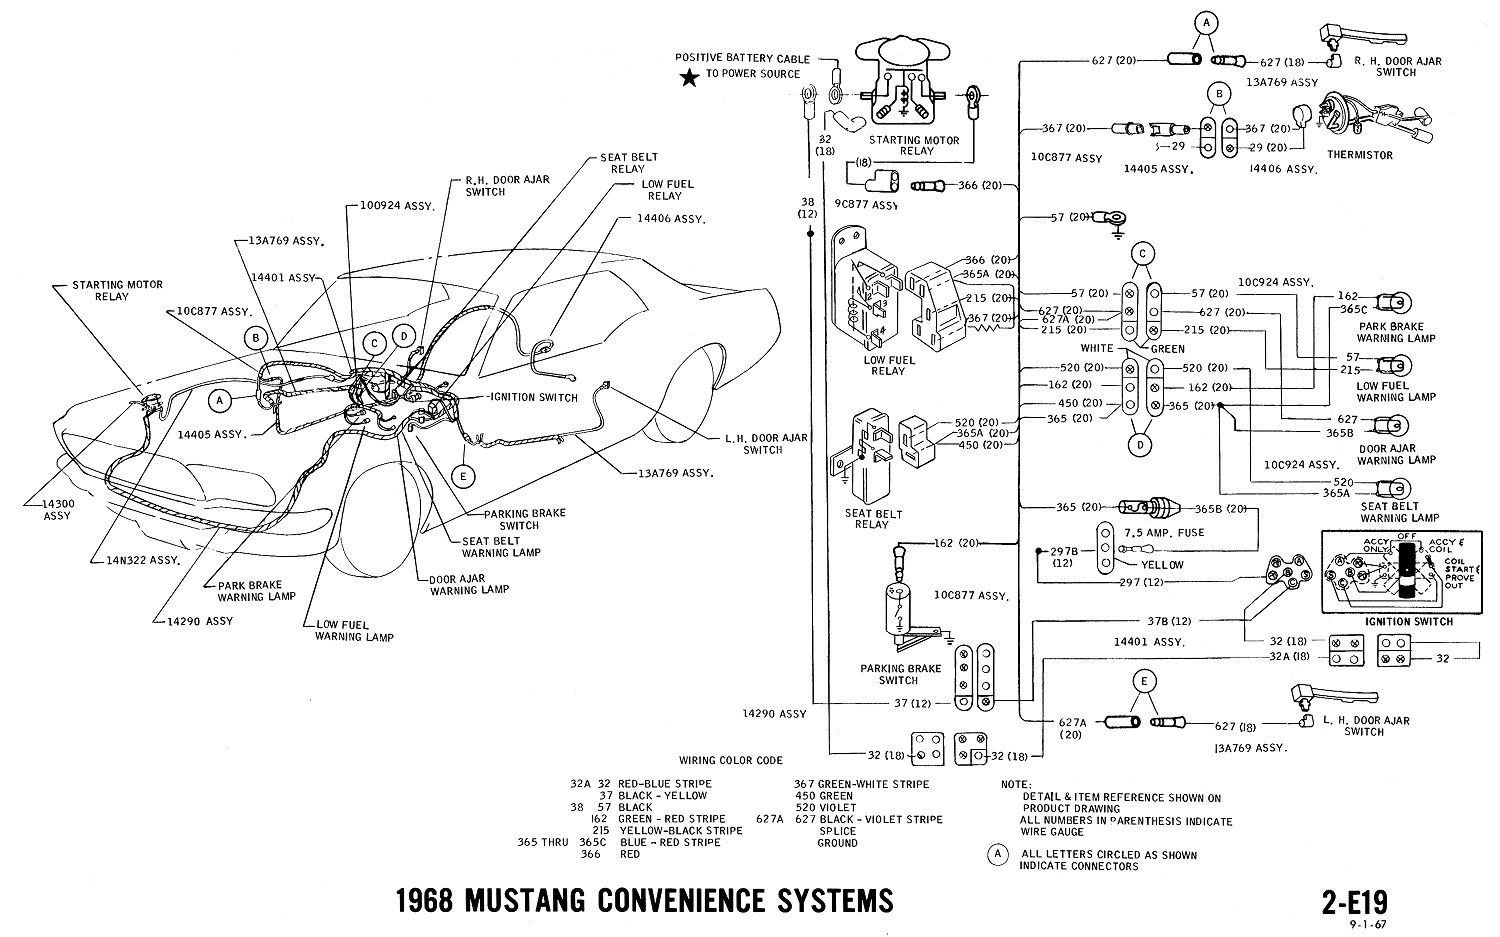 1968 mustang wiring diagram convenience systems 65 mustang dash wiring diagram 1965 ford mustang wiring diagram 1965 ford mustang wiring diagrams at gsmportal.co